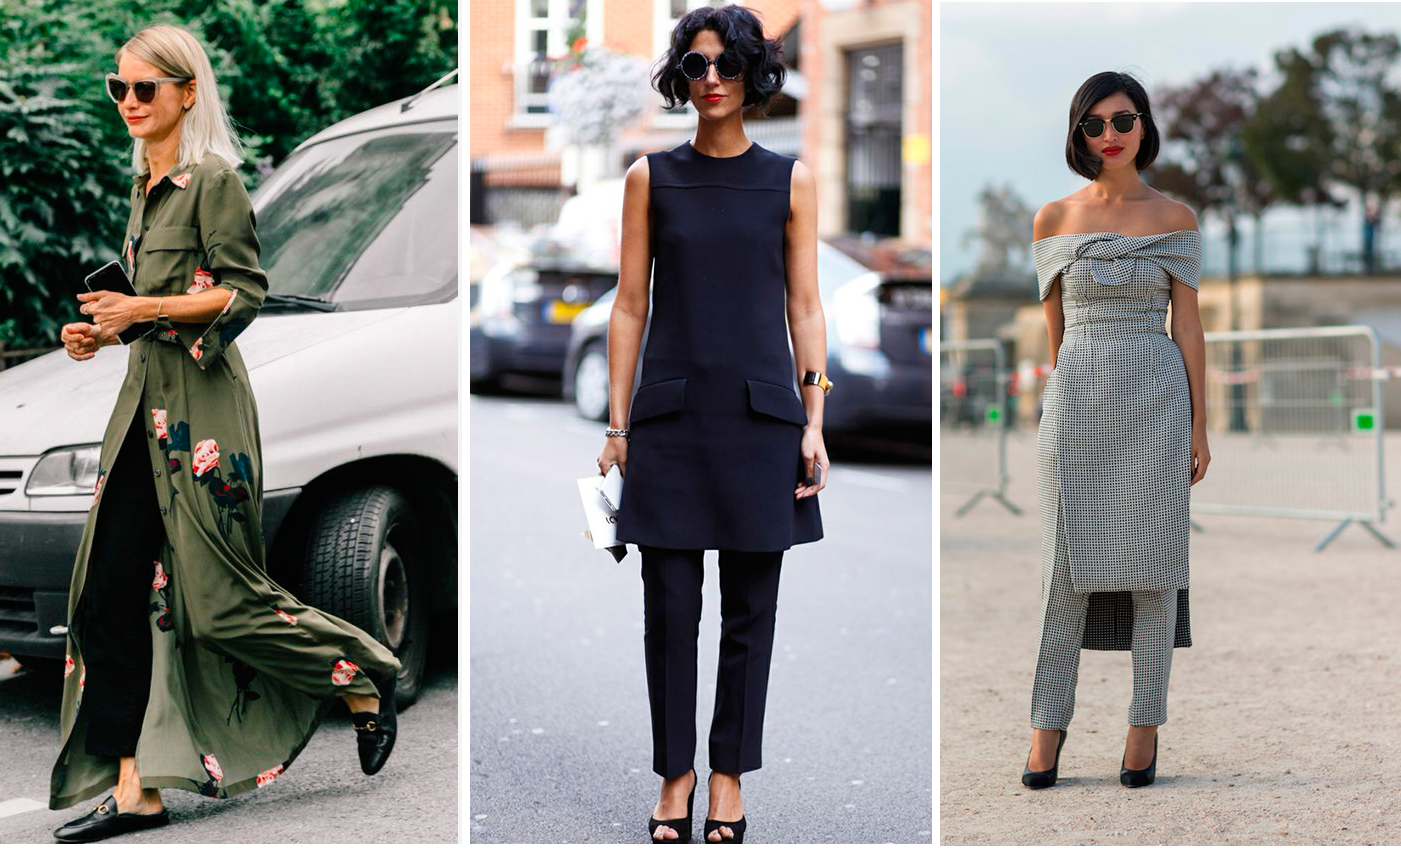 StreetStyle - Dress Over Pants Inspiration